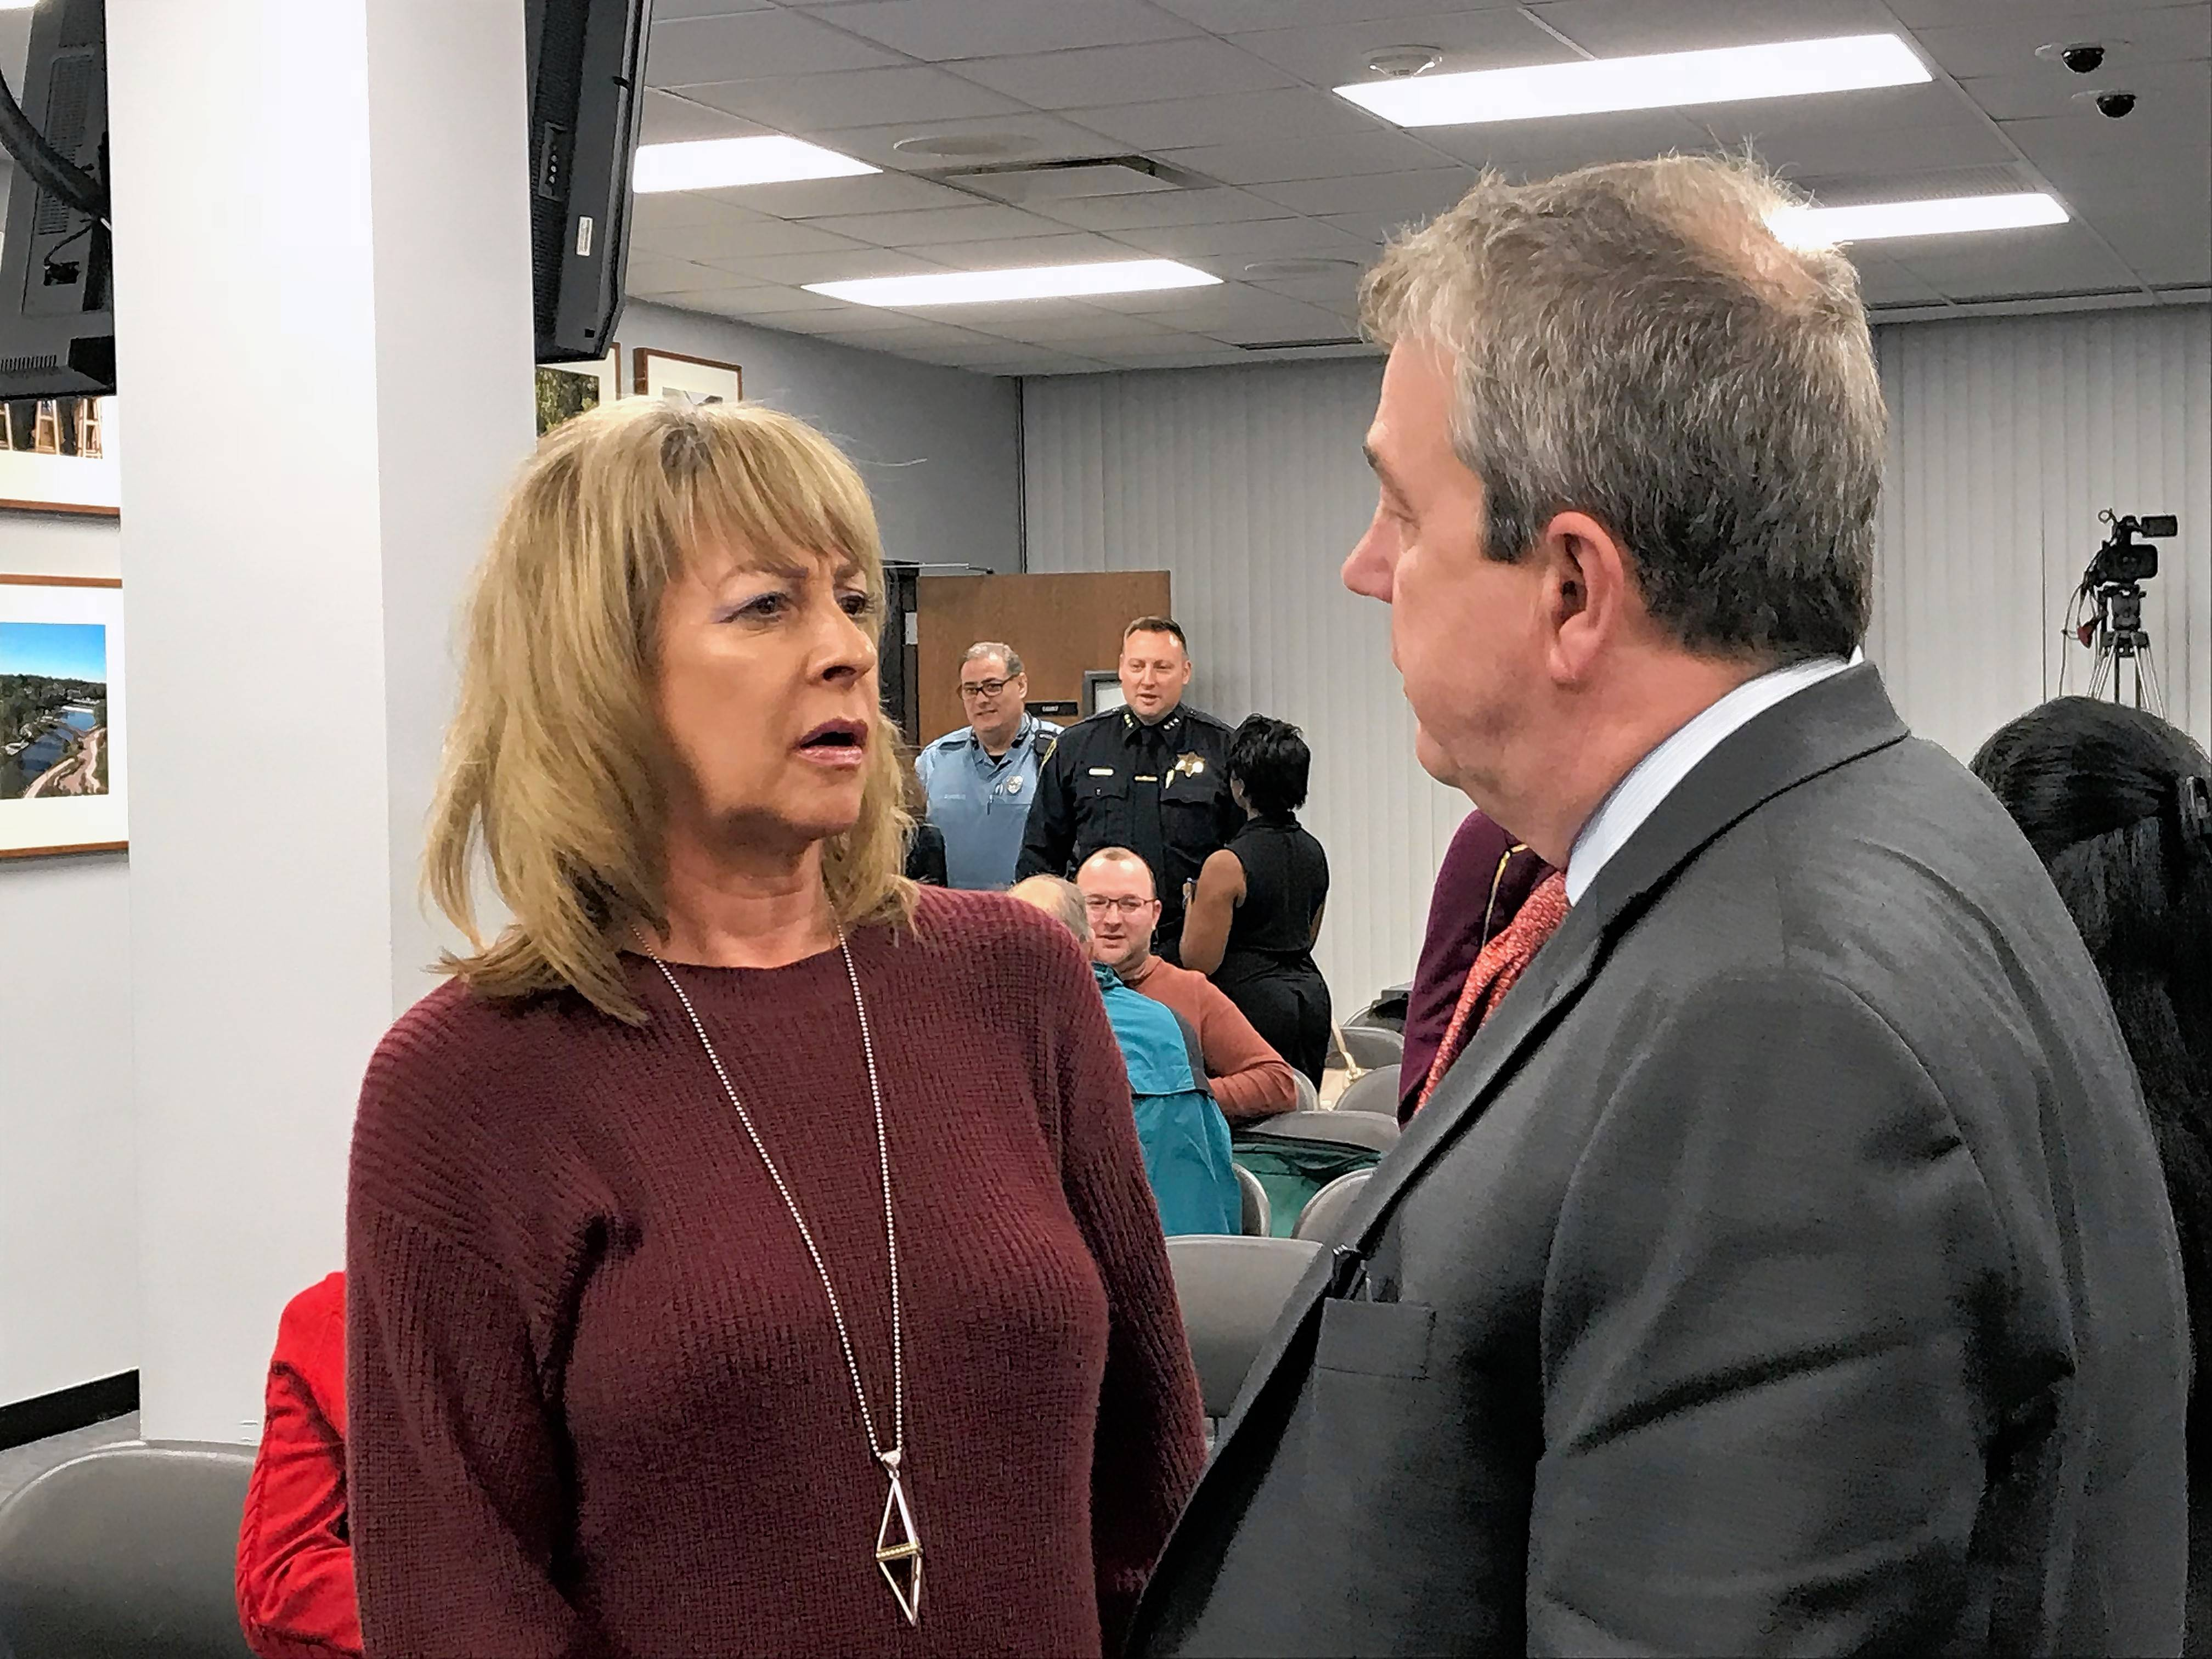 Kim Bless, left, president and CEO of the Elgin Area Convention and Visitors Bureau, talks to a supporter Wednesday before the Elgin City Council meeting.